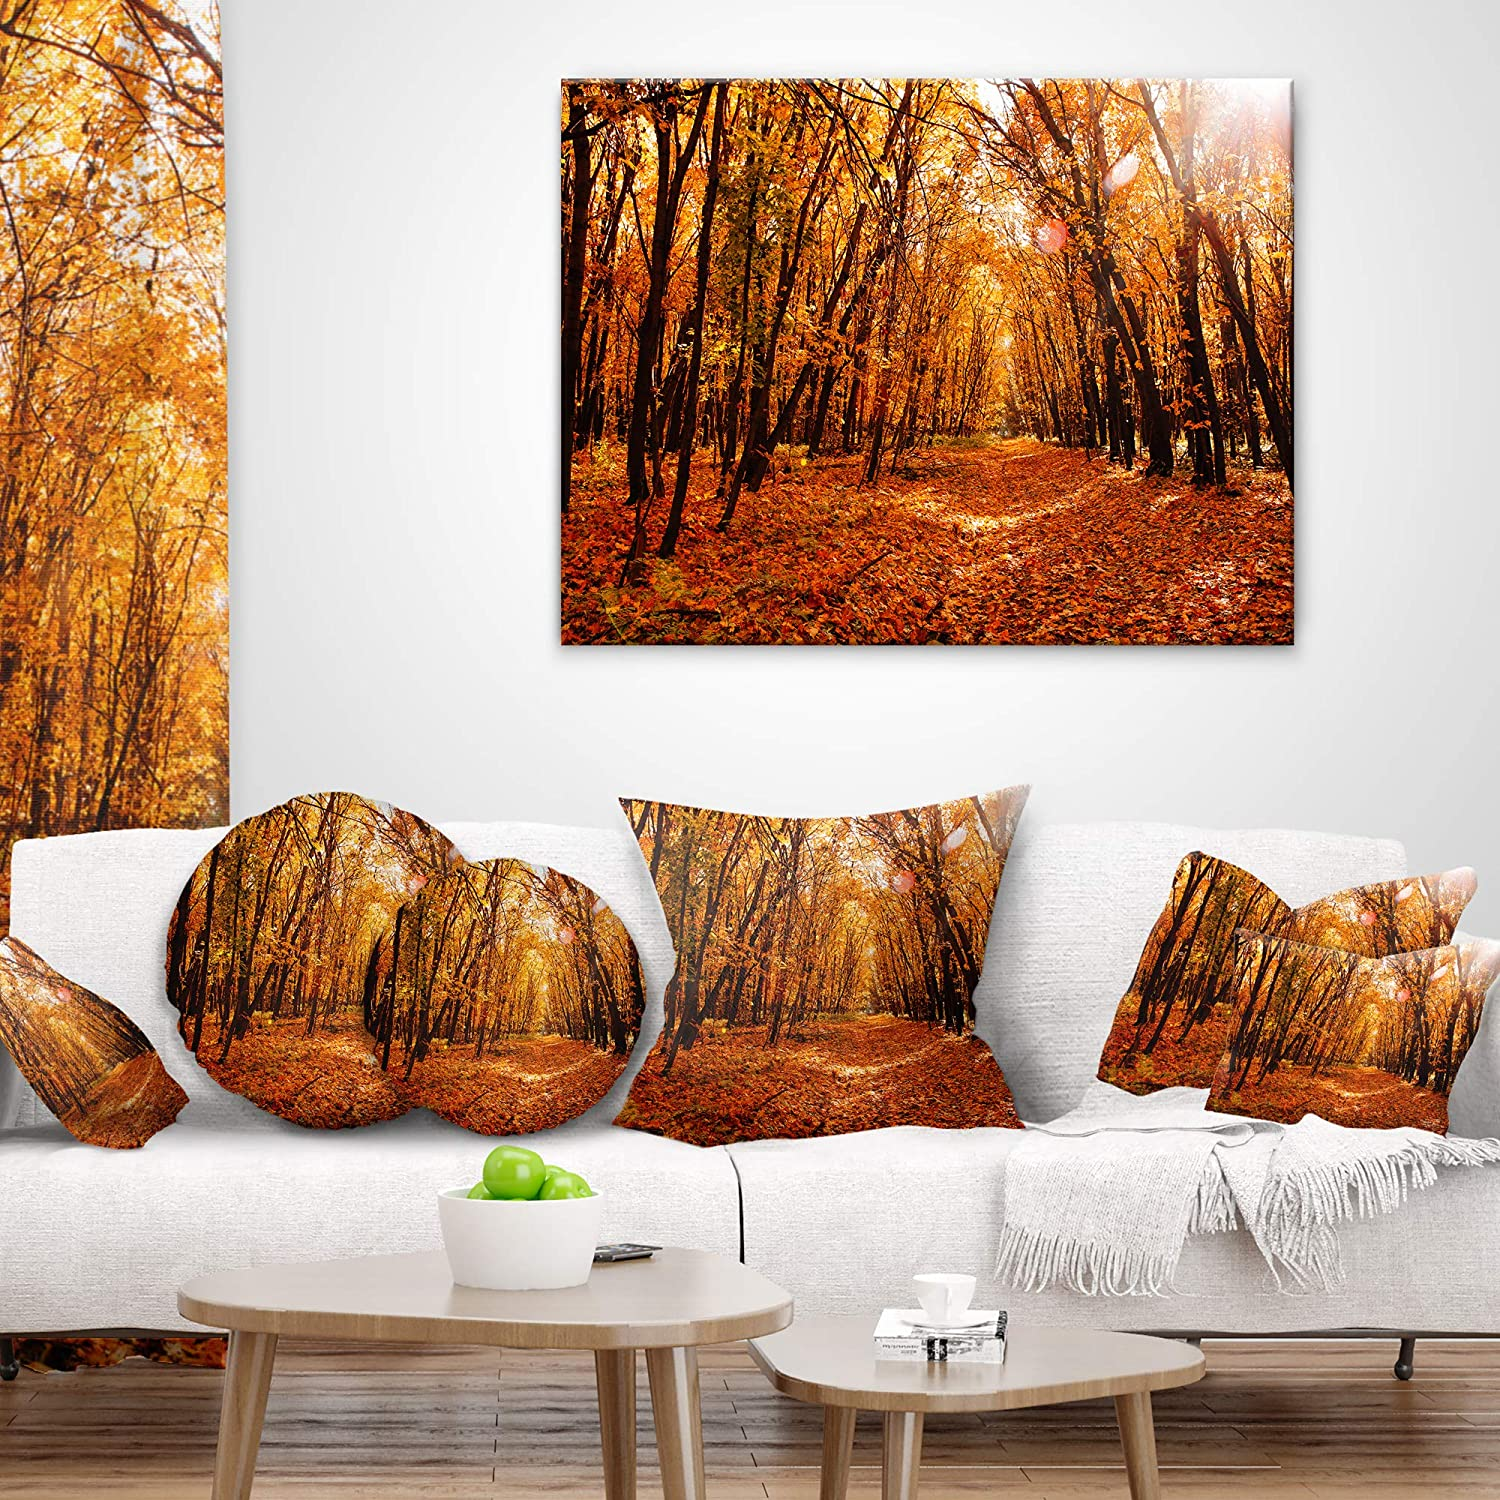 Designart CU9718-26-26 Yellow Falling Leaves in Forest Landscape Photo Cushion Cover for Living Room Insert Printed On Both Side x 26 in in Sofa Throw Pillow 26 in